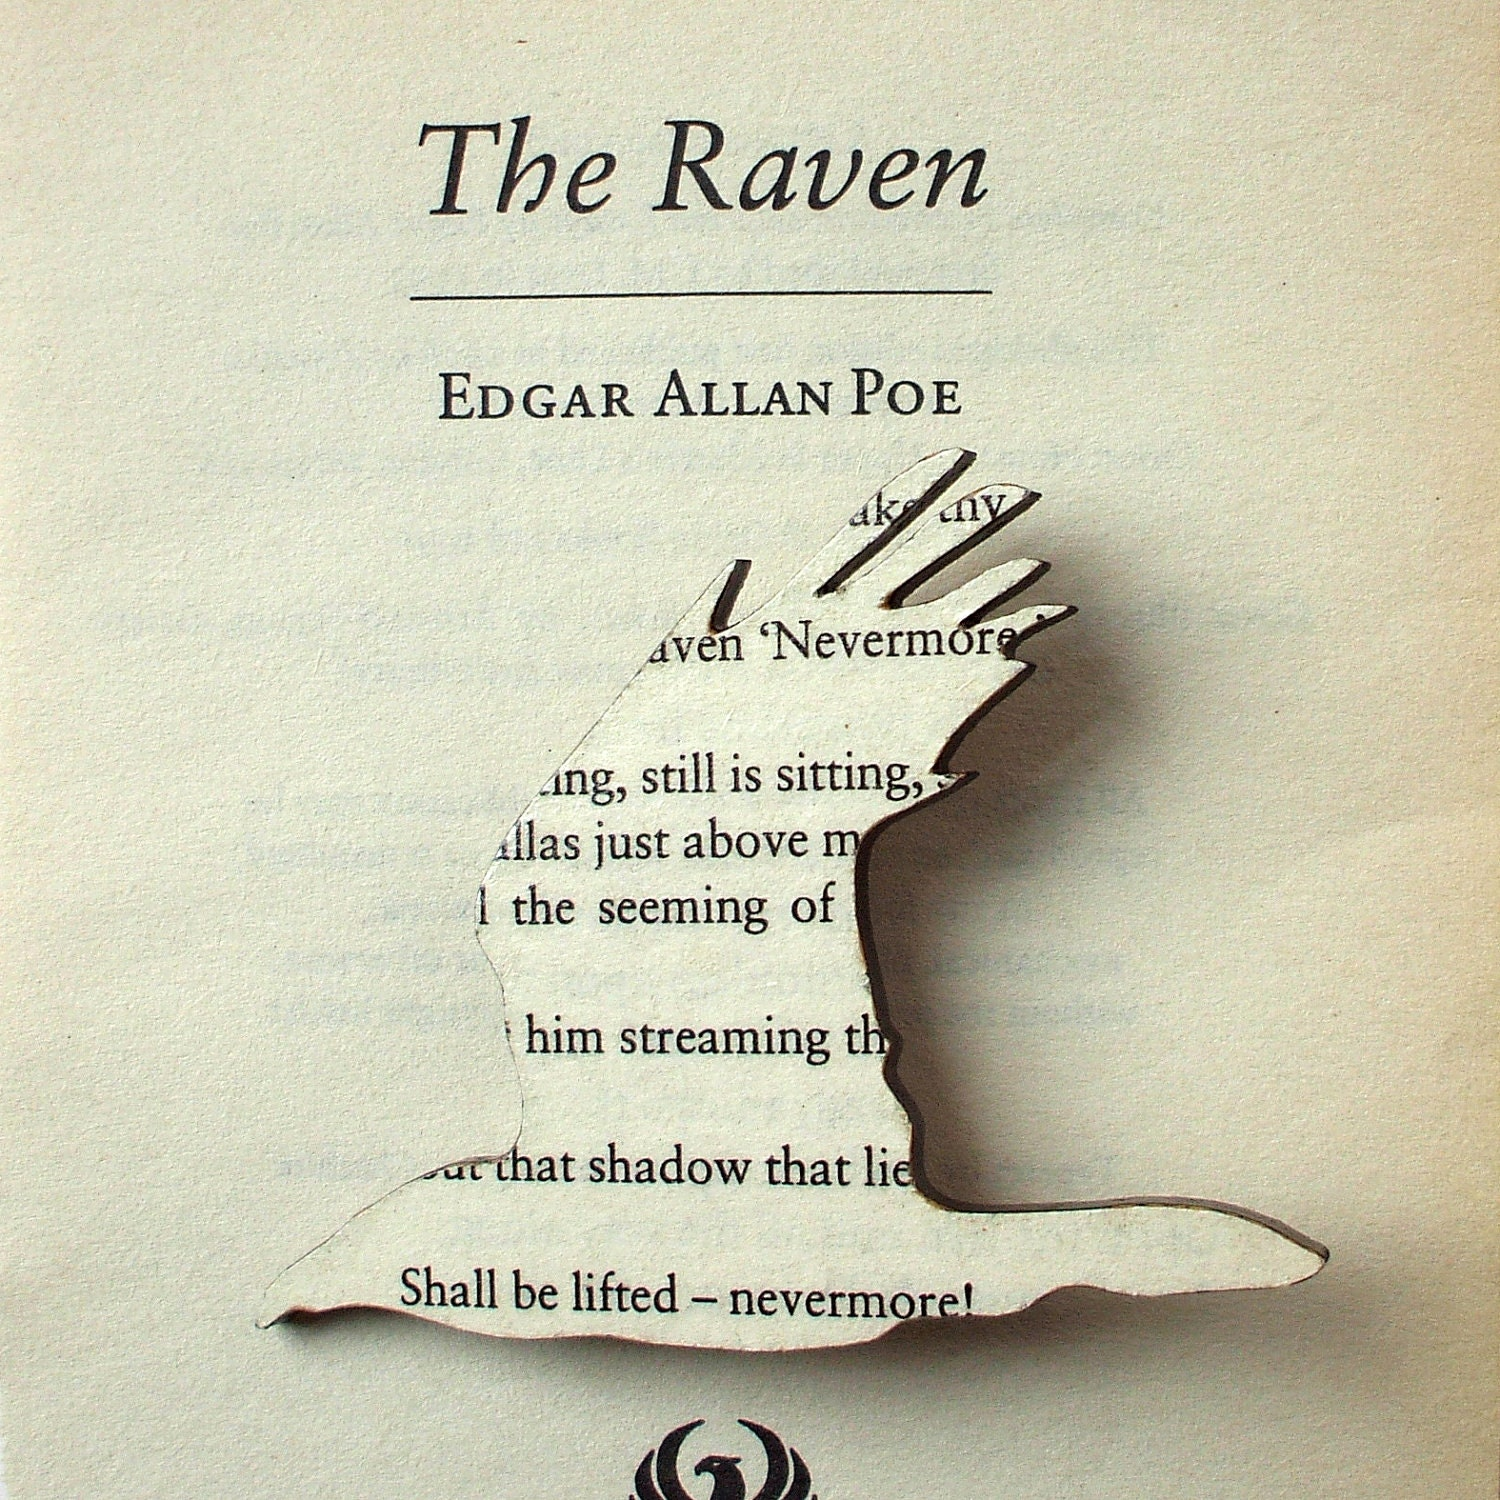 """the representation of poes own crisis on edgar allan poes the raven Edgar allan poe's """"the raven"""" is all the rage—the success of which a struggling poet like frances osgood can only dream as a mother trying to support two young children after her husband's cruel betrayal, frances jumps at the chance to meet the illustrious mr poe at a small literary gathering, if only to help her fledgling career."""